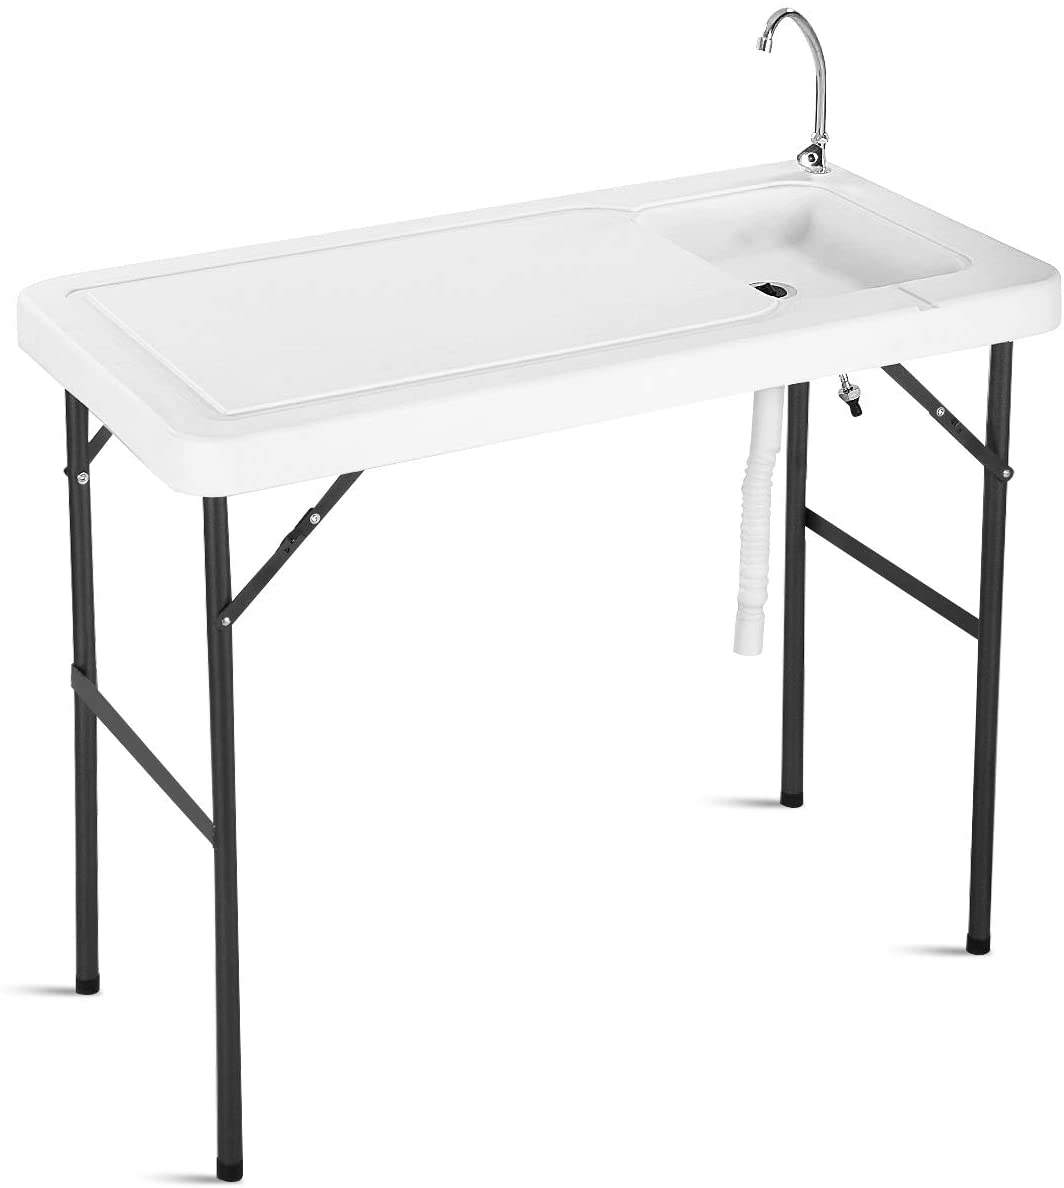 Best Fish Cleaning Tables 2021 Reviews 8